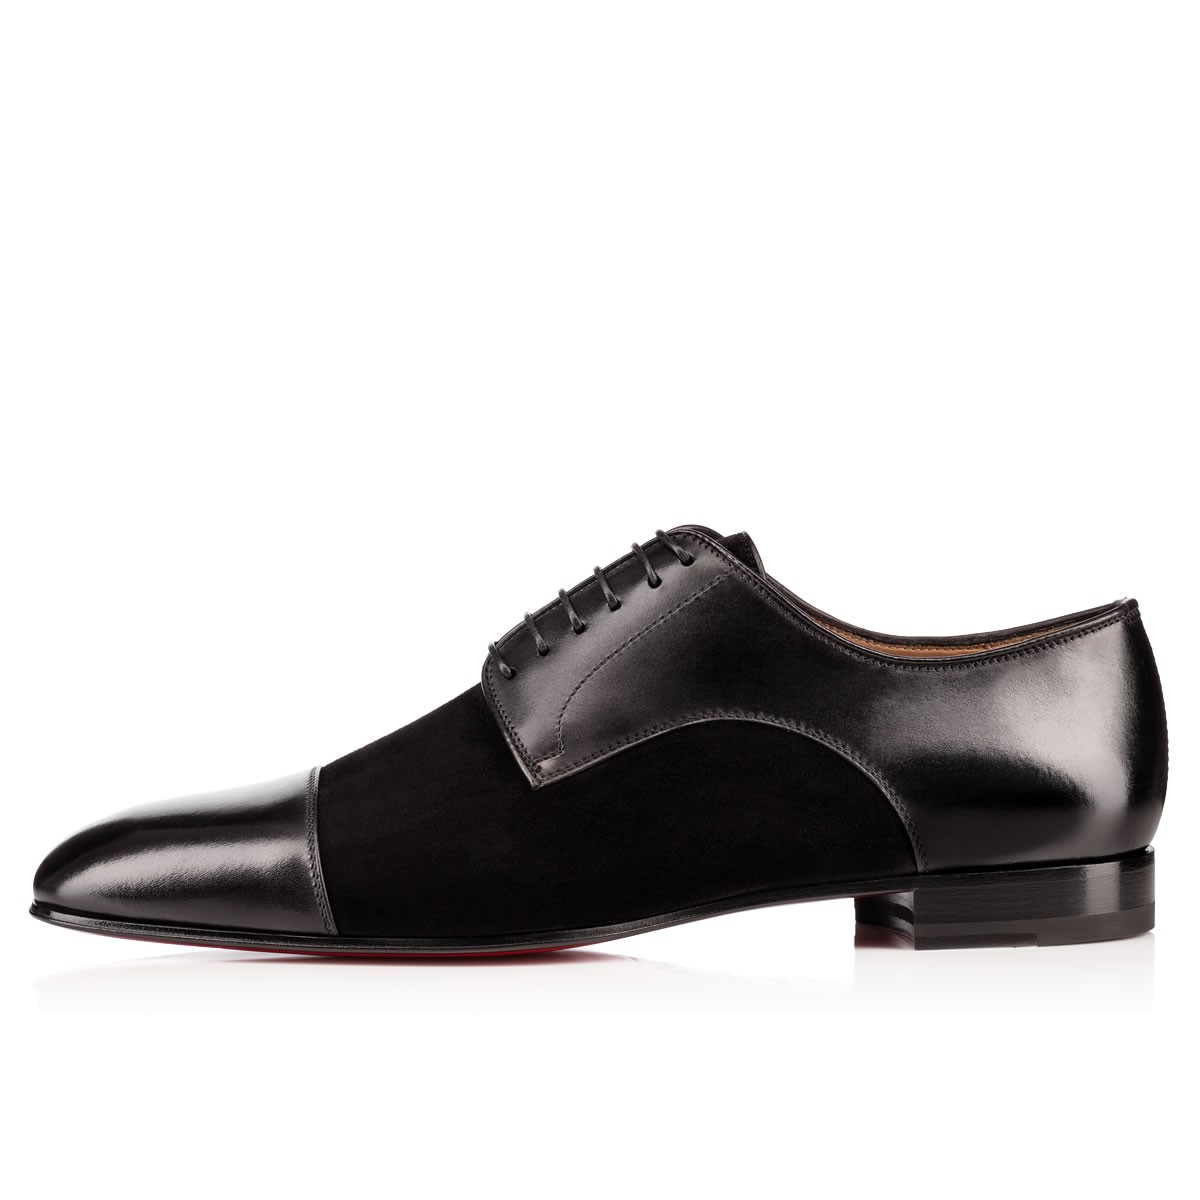 Men Shoes - Top Daviol - Christian Louboutin